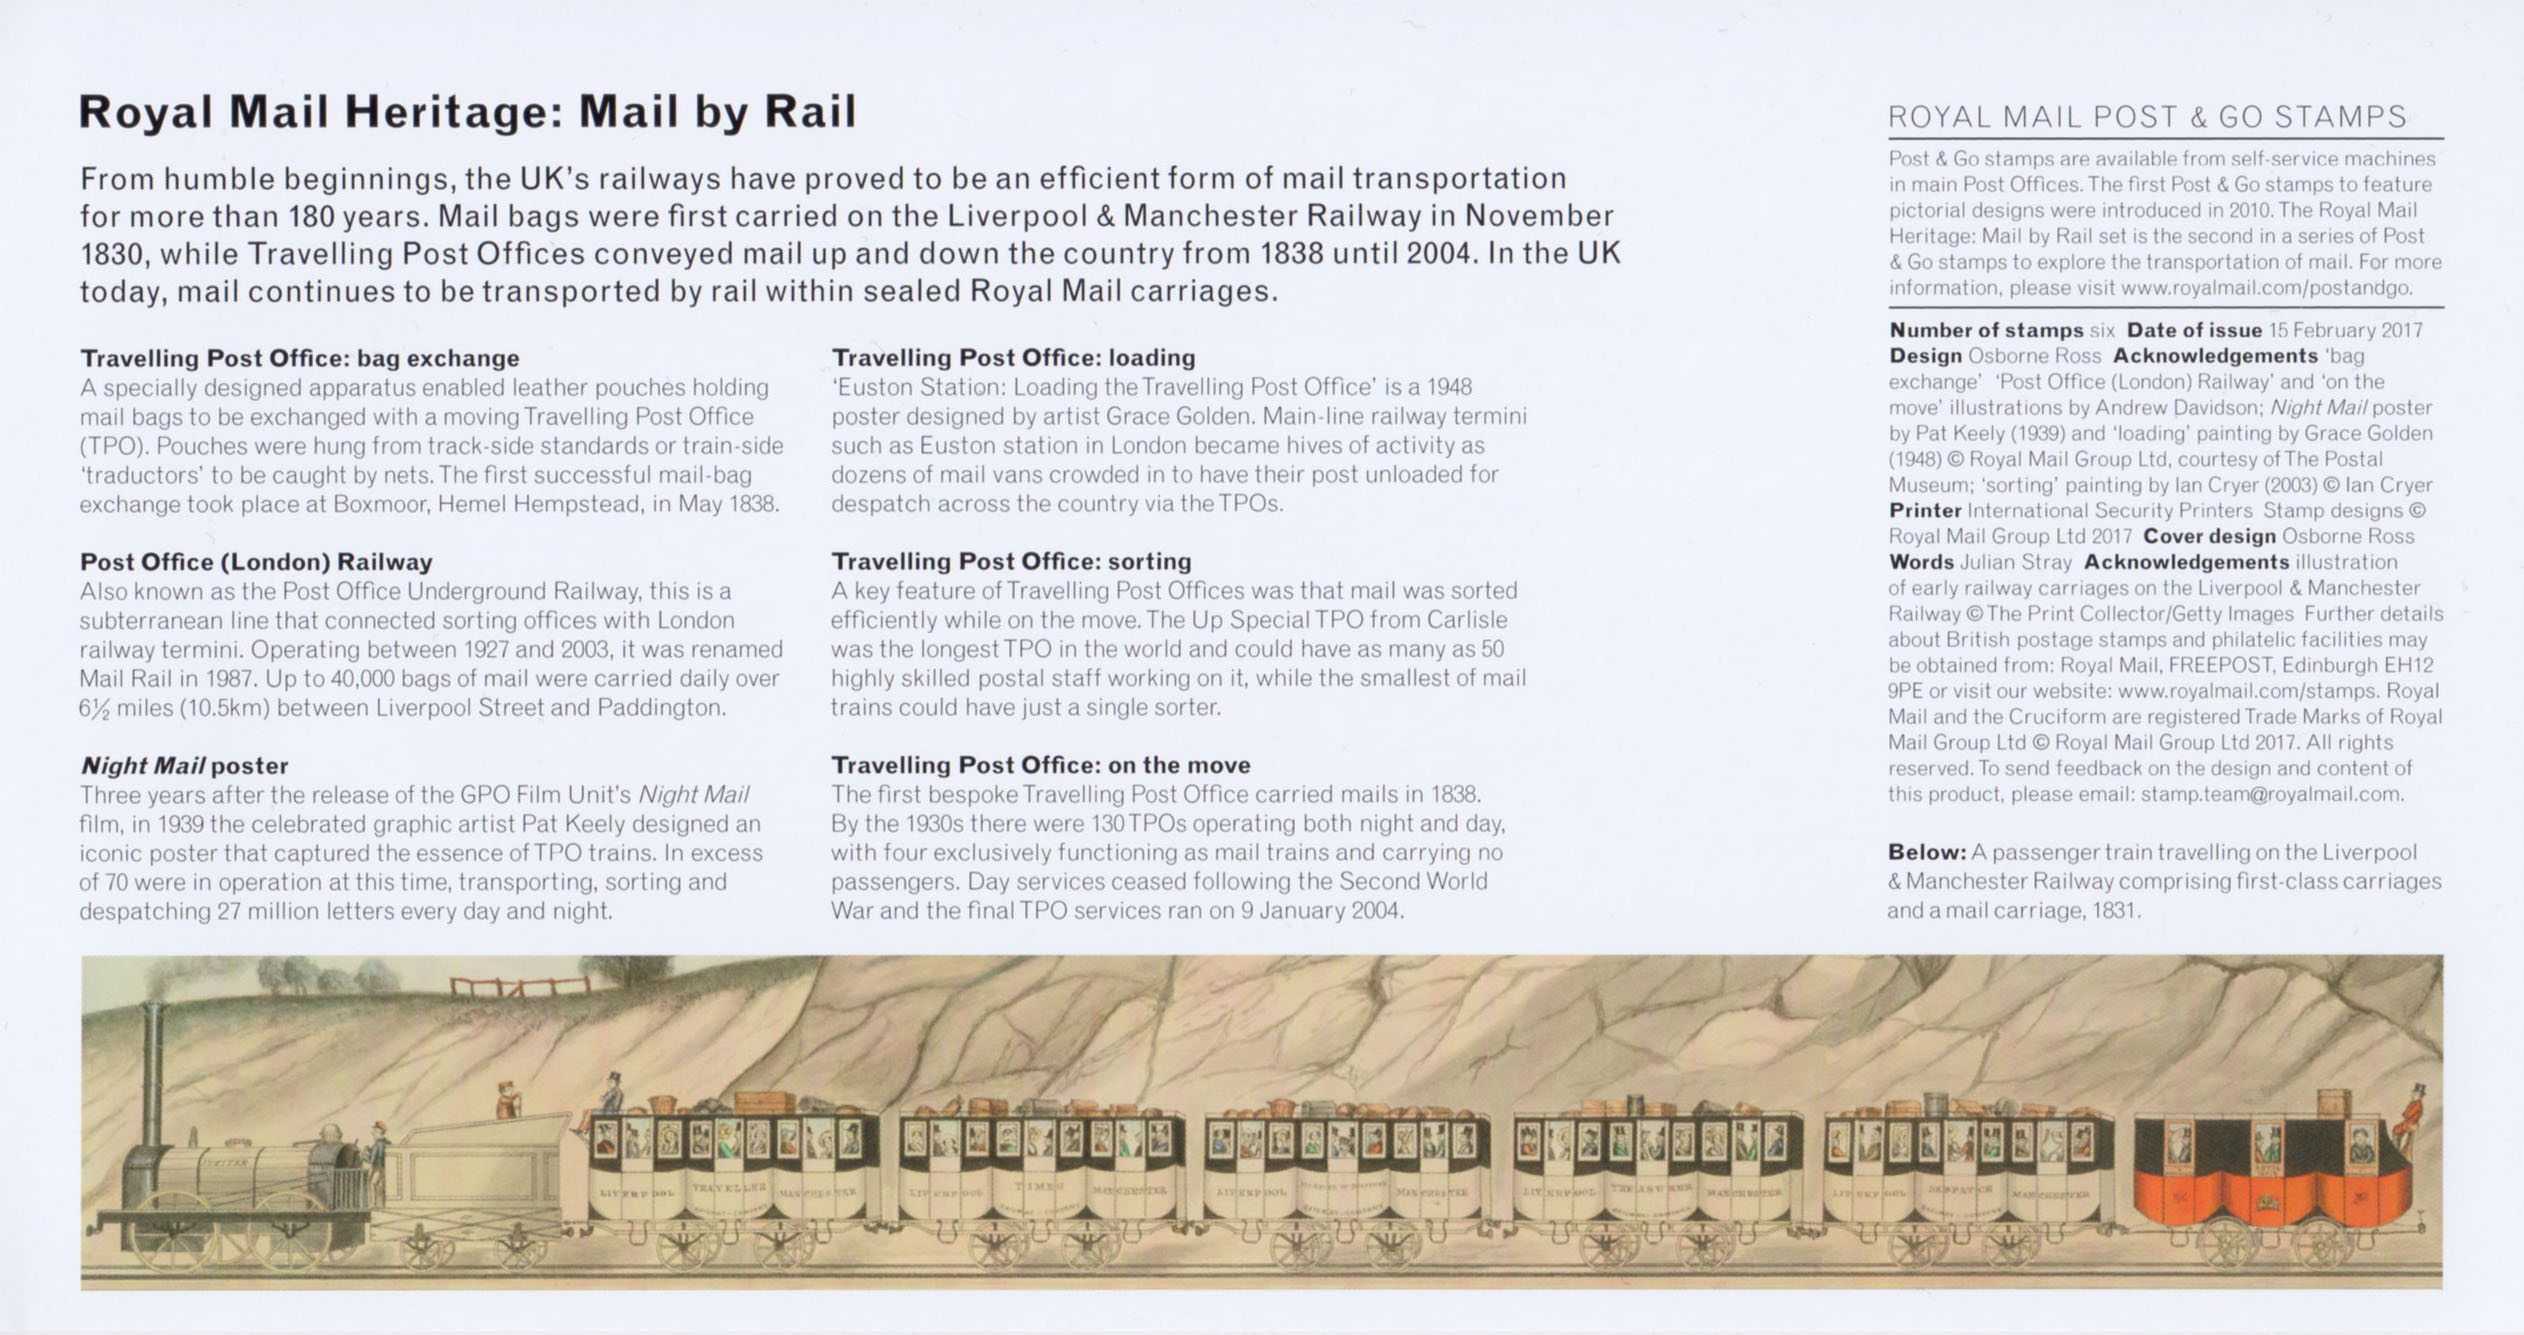 Post & Go Royal Mail Heritage Mail by Rail 2017 Collect GB